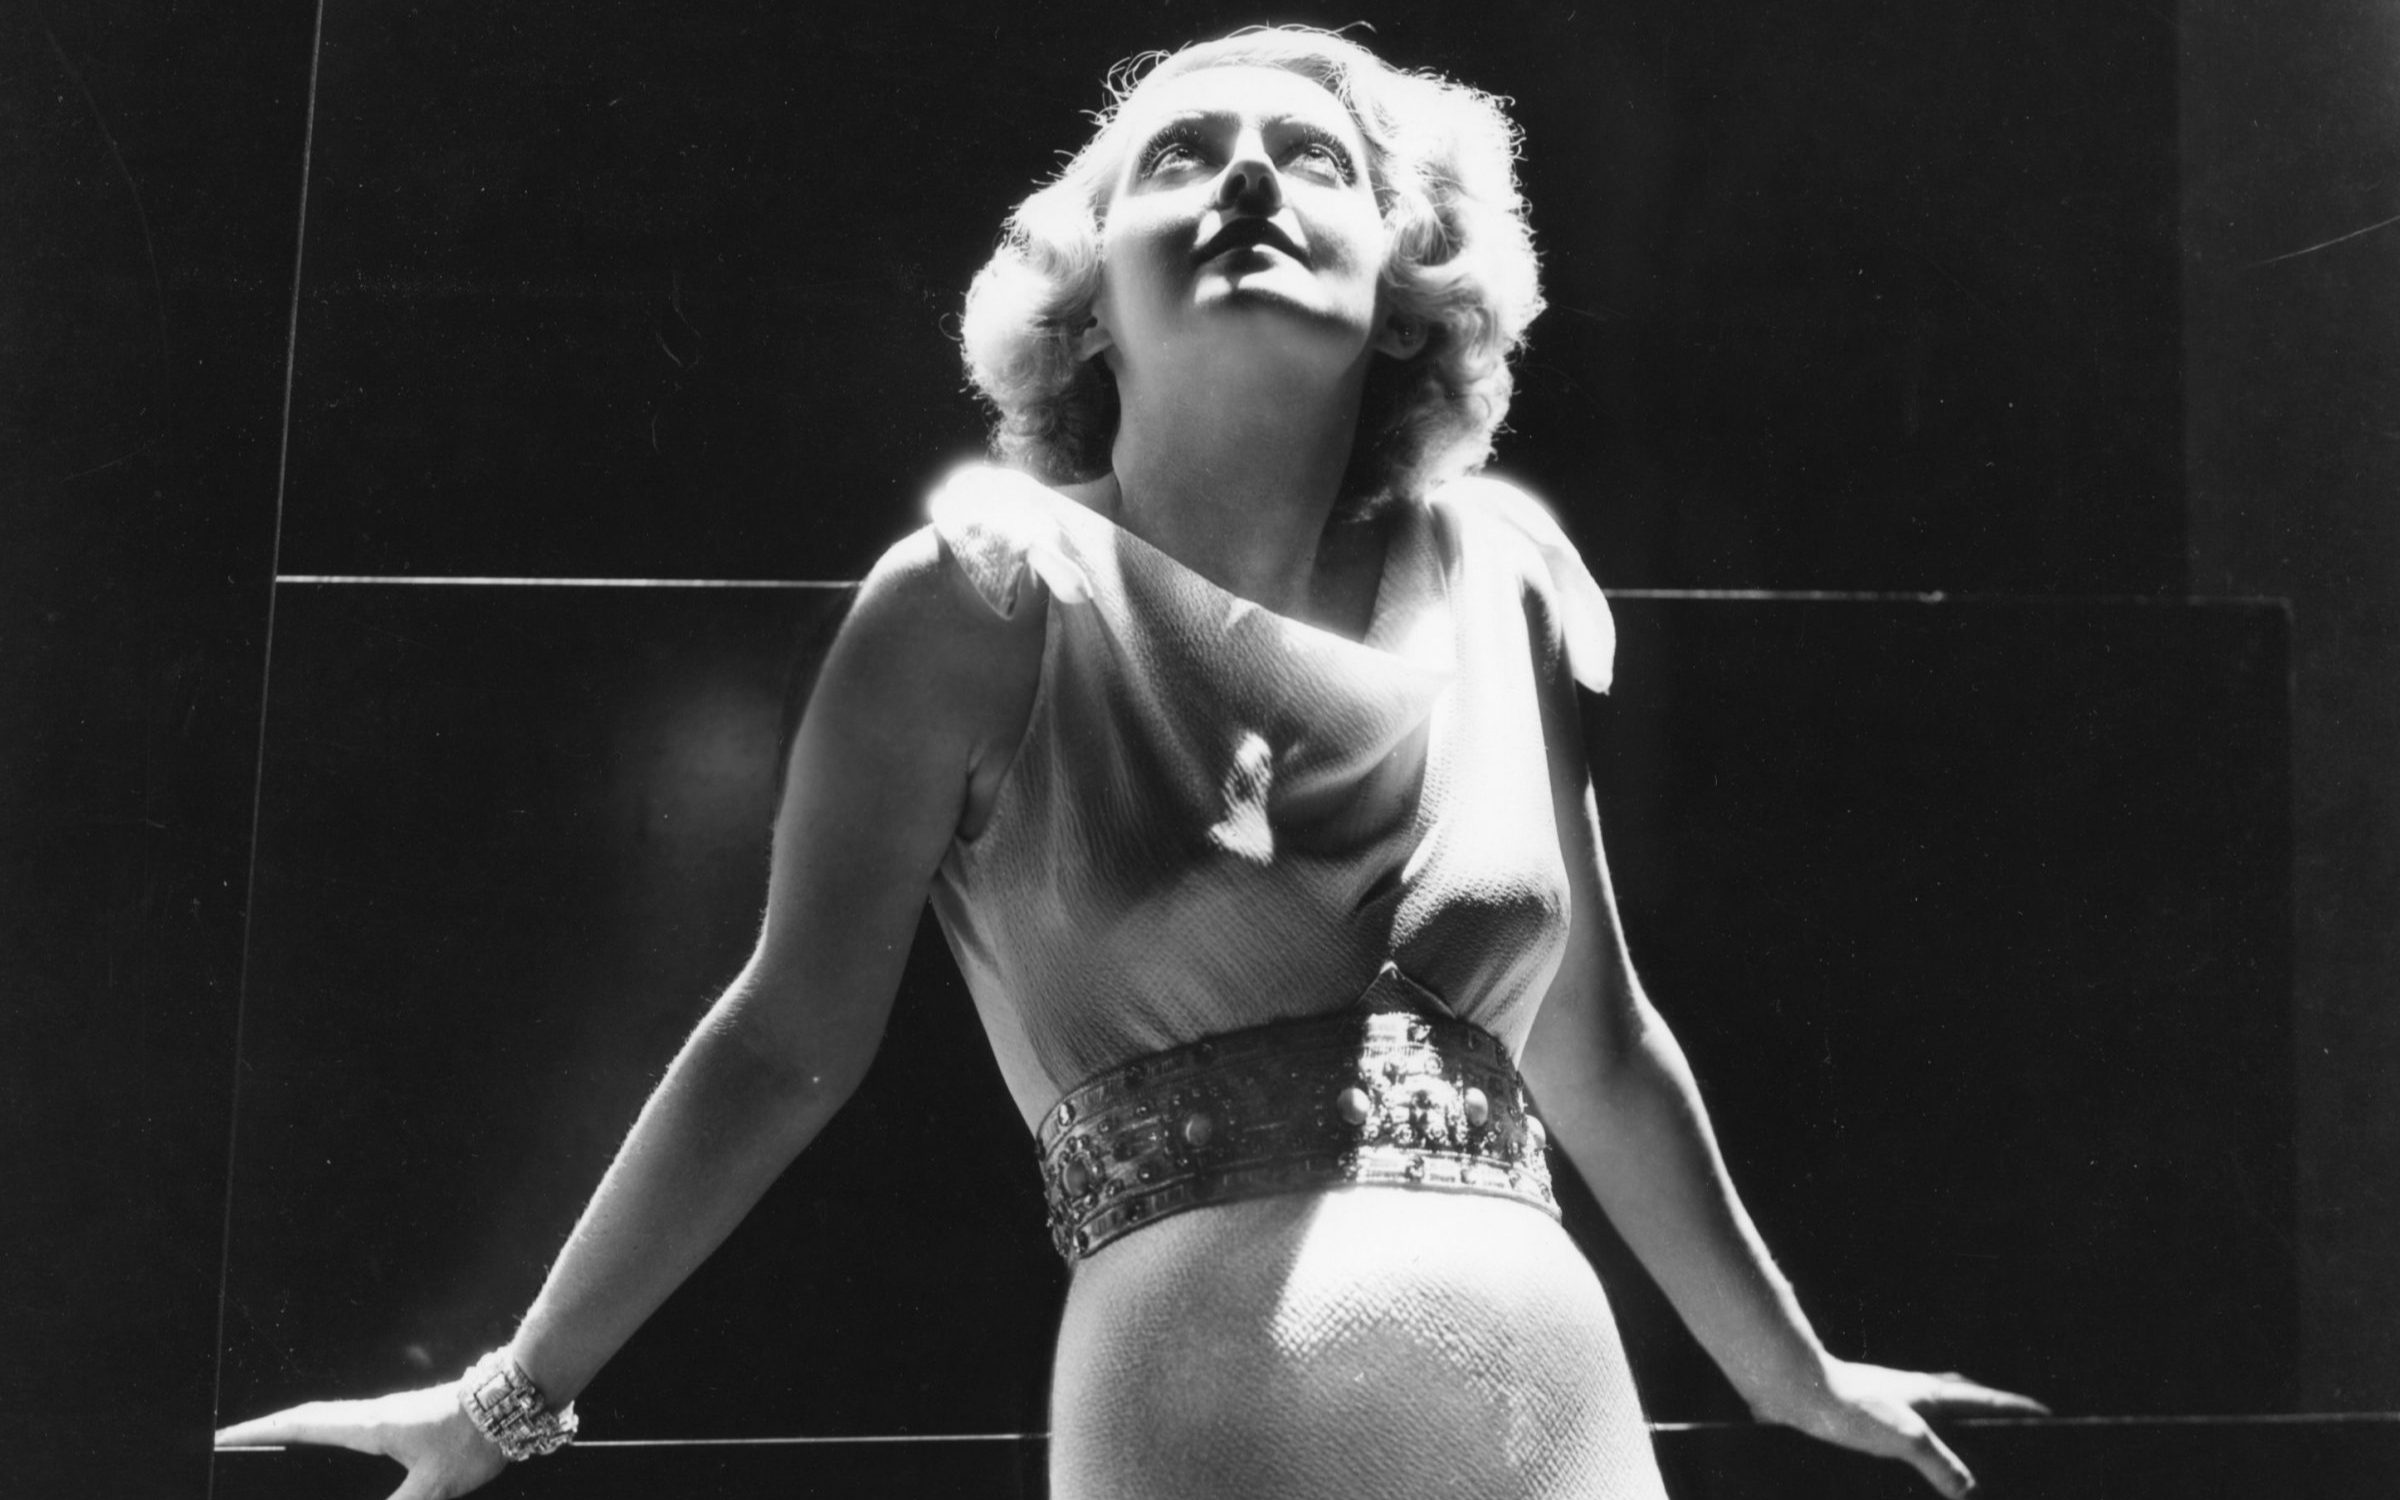 American actress Bette Davis, whose waist was reportedly insured for $28,000. Credit: Warner Bros. Pictures / Sunset Boulevard / Corbis via Getty Images.